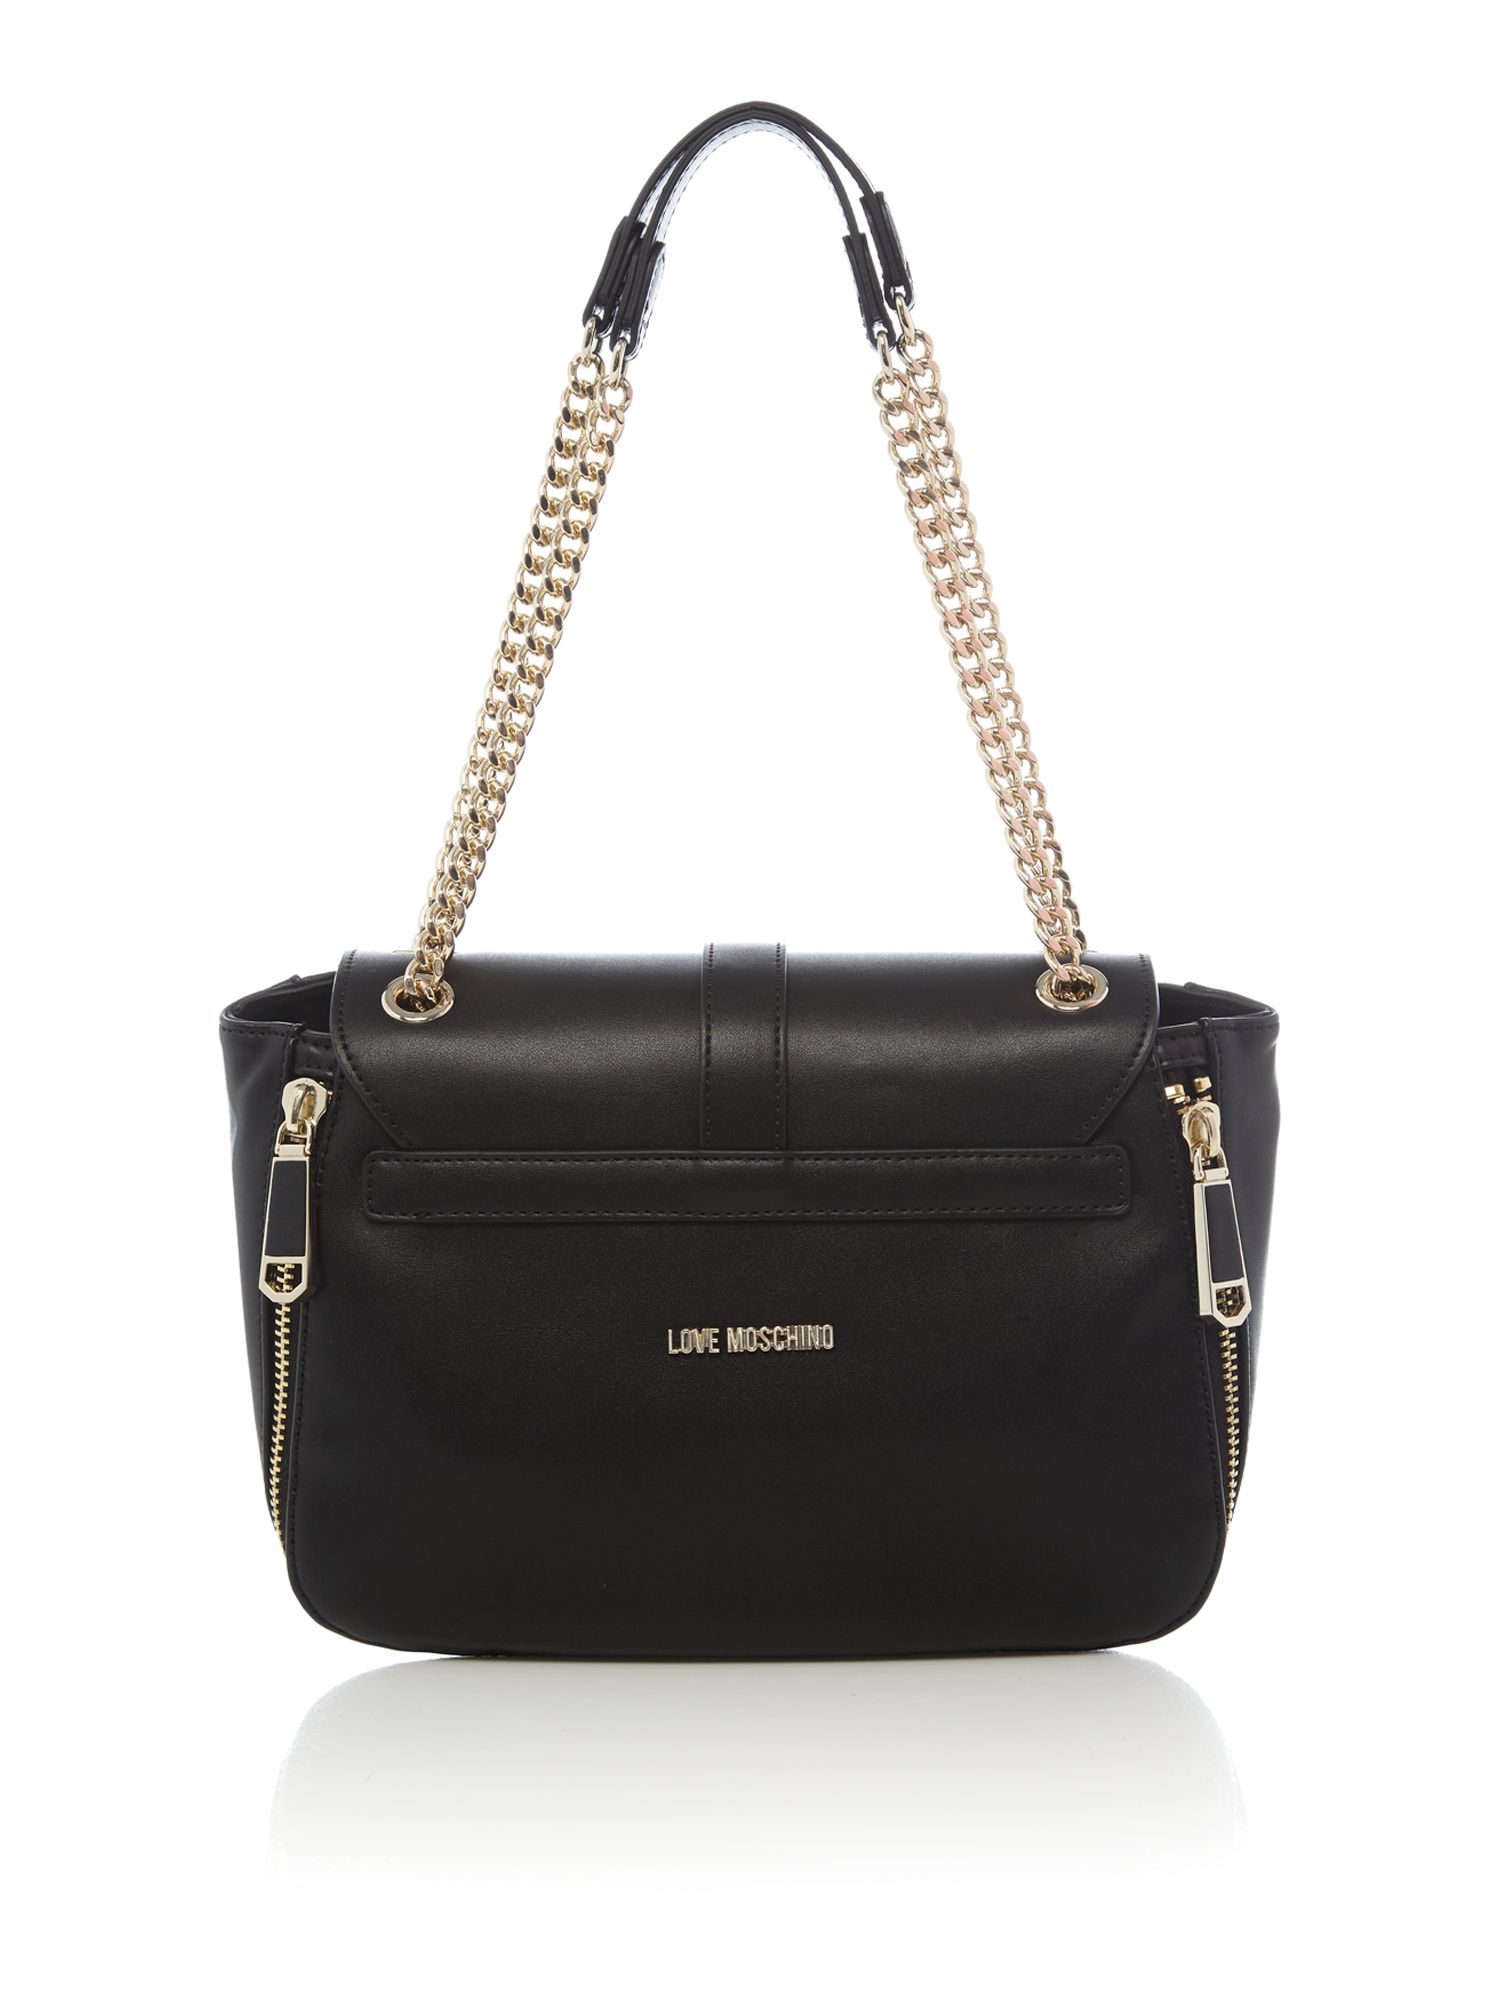 Love moschino Metal Heart Black Shoulder Bag in Black | Lyst